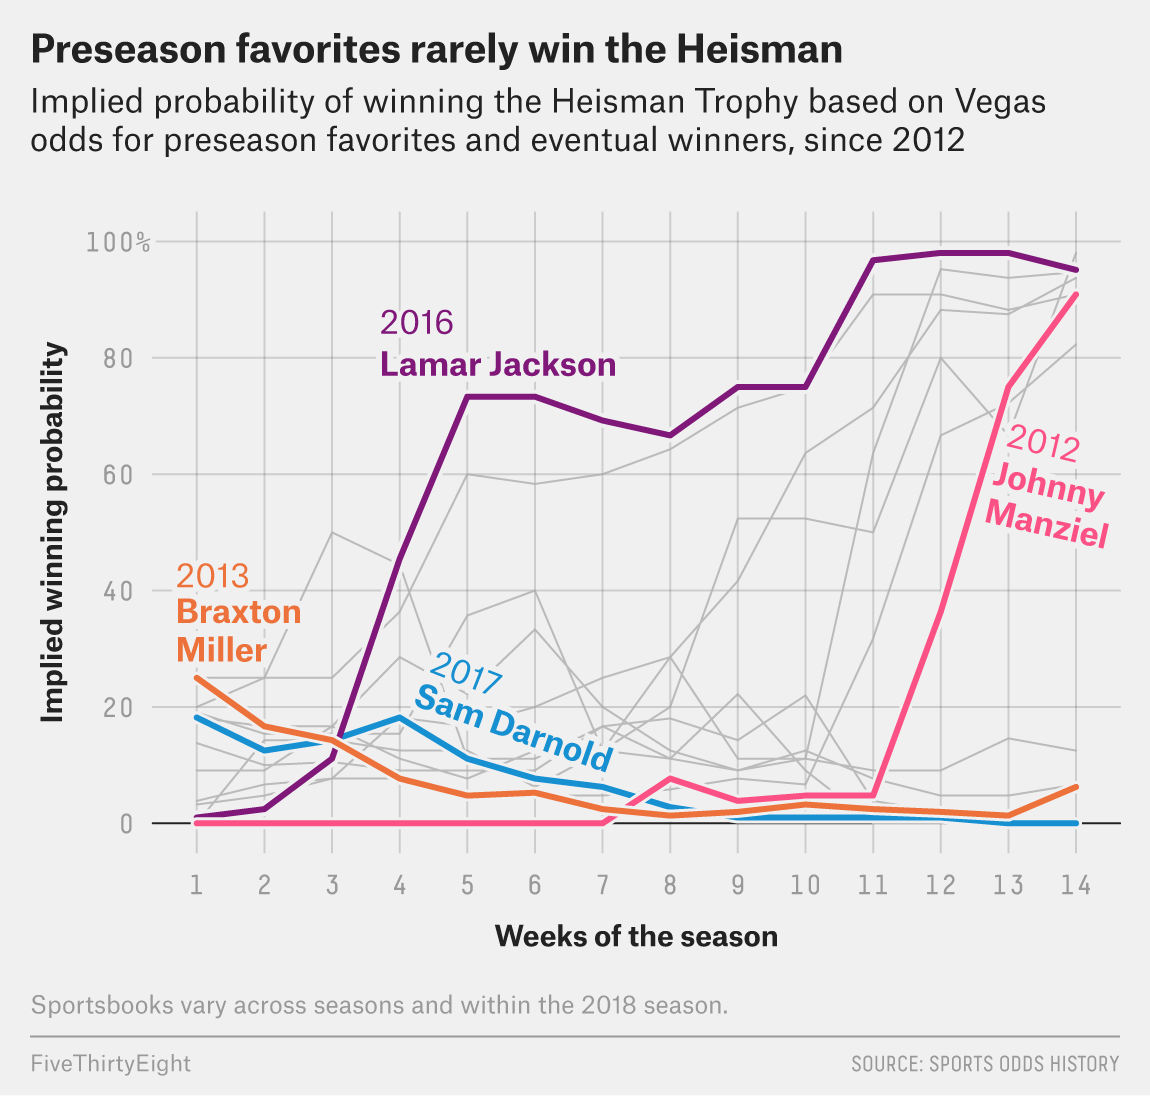 Want To Bet Now On The Heisman Trophy Winner? Maybe Don't